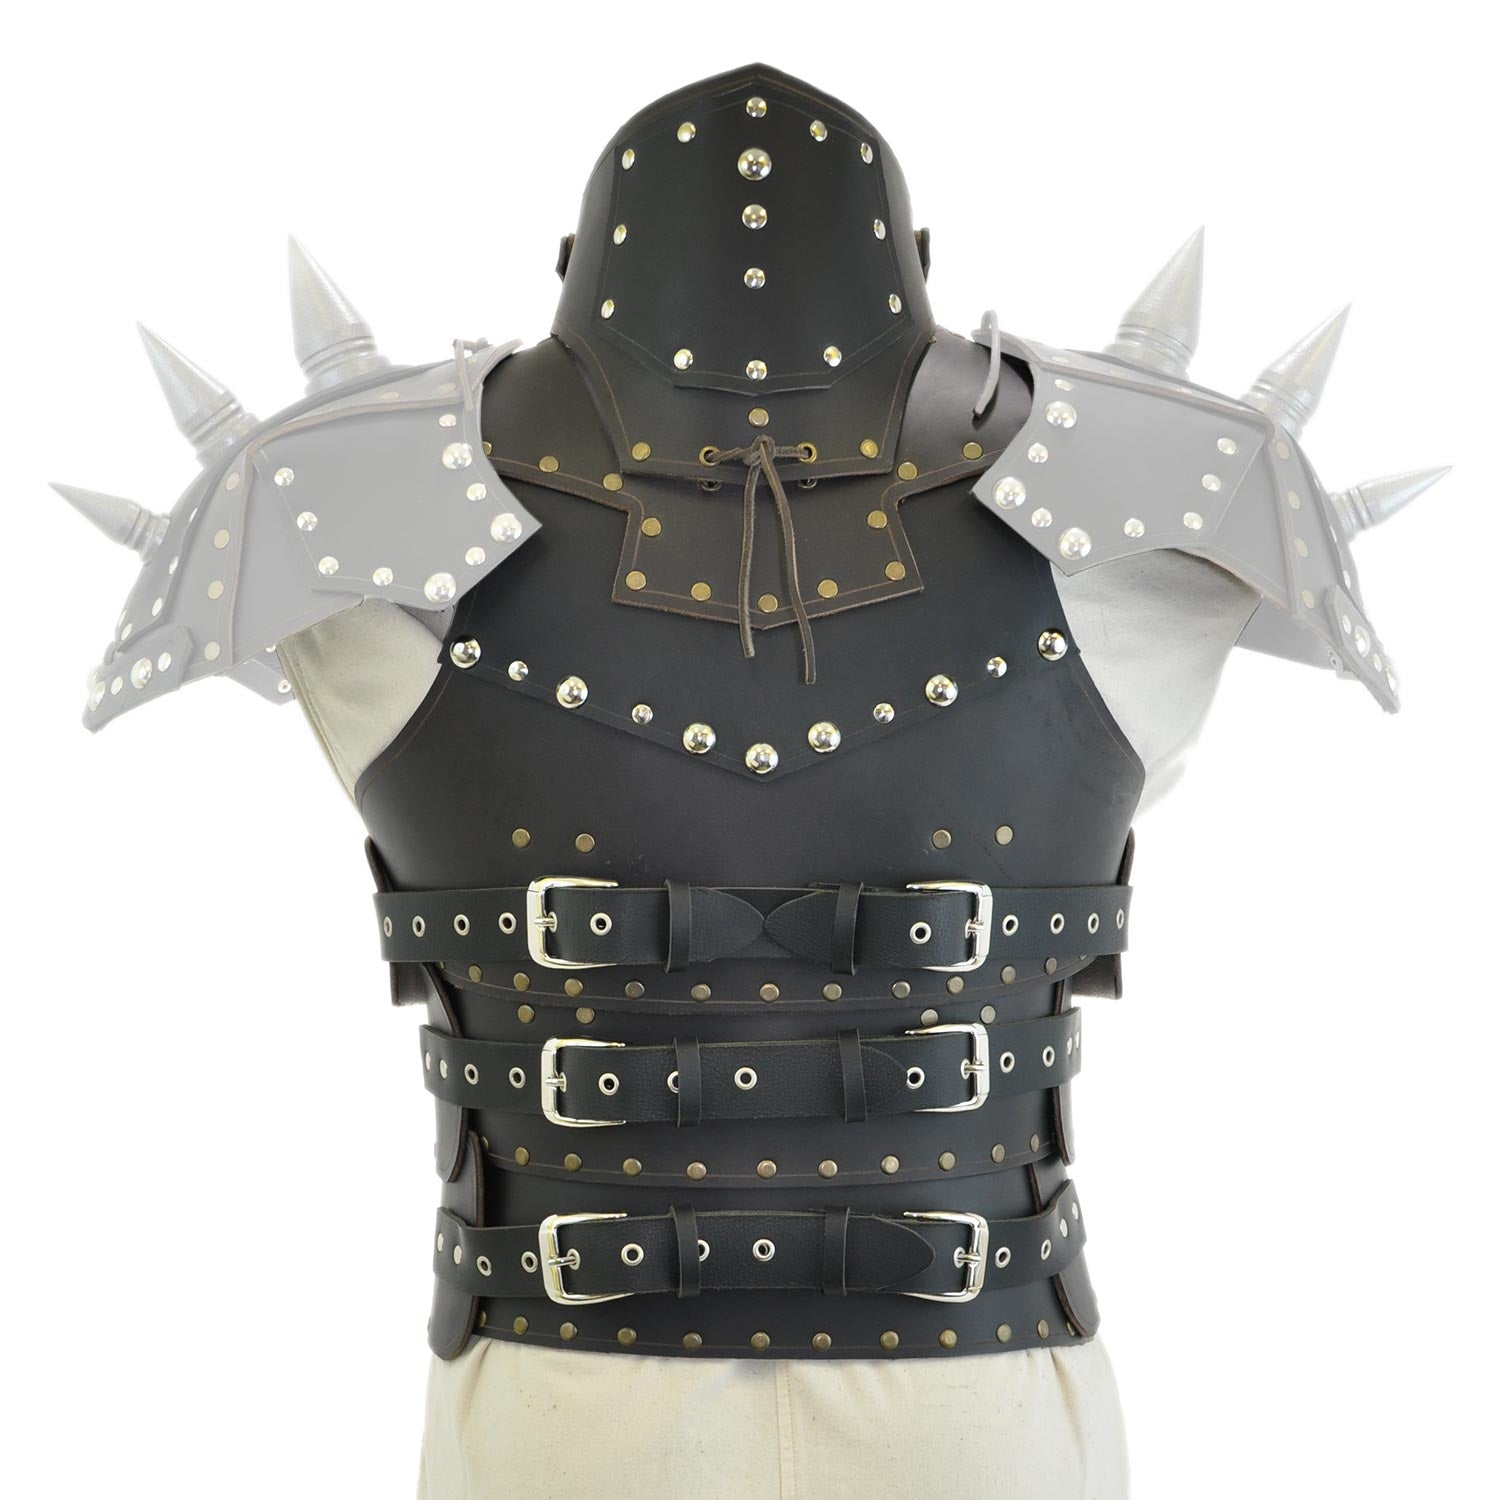 Monsterkiller's Armor - Torso with gorget